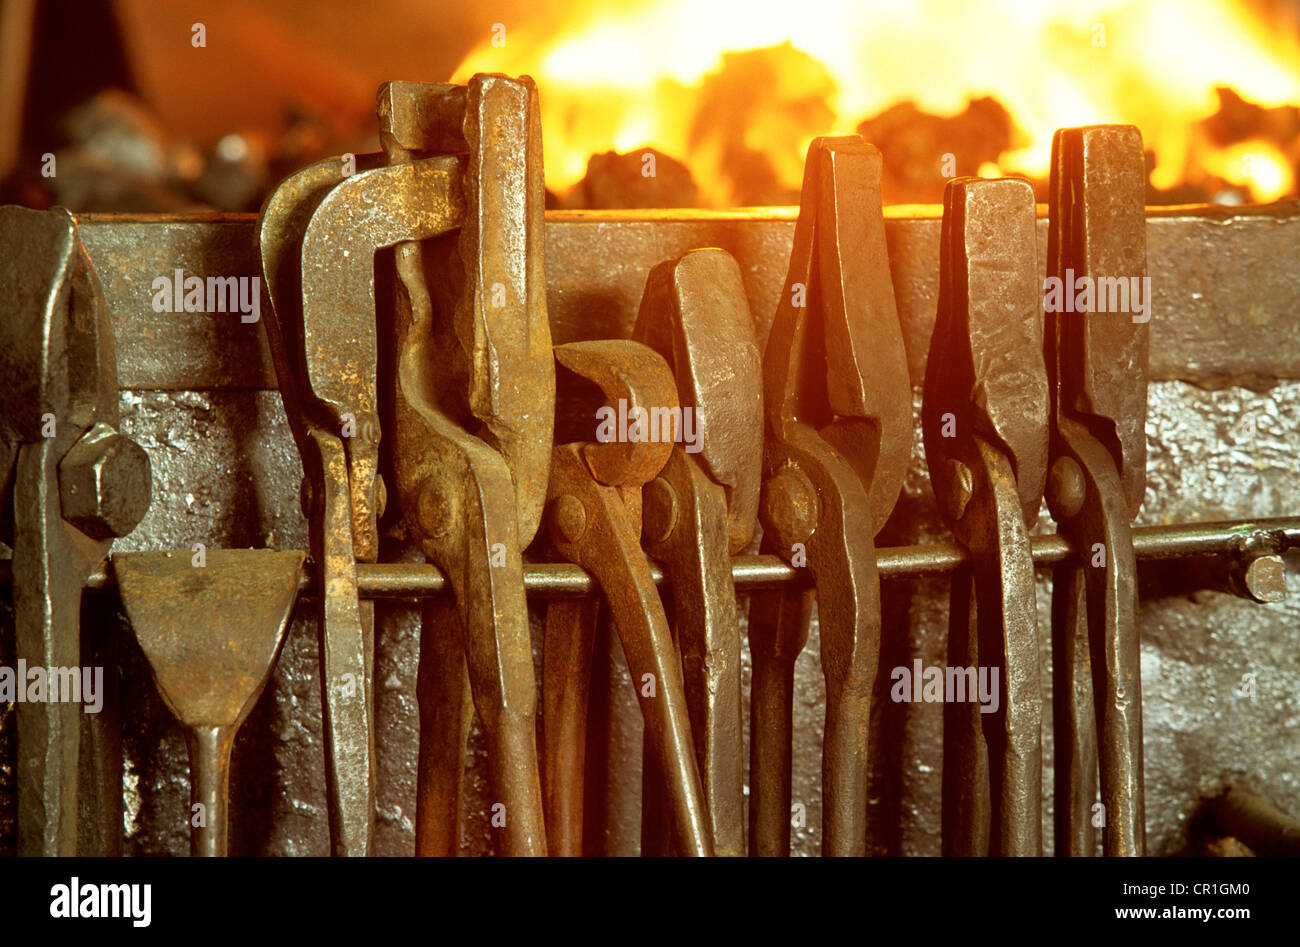 France, Vaucluse, Pernes les Fontaines, La Forge ironworks, Jean Philippe Fally - Stock Image